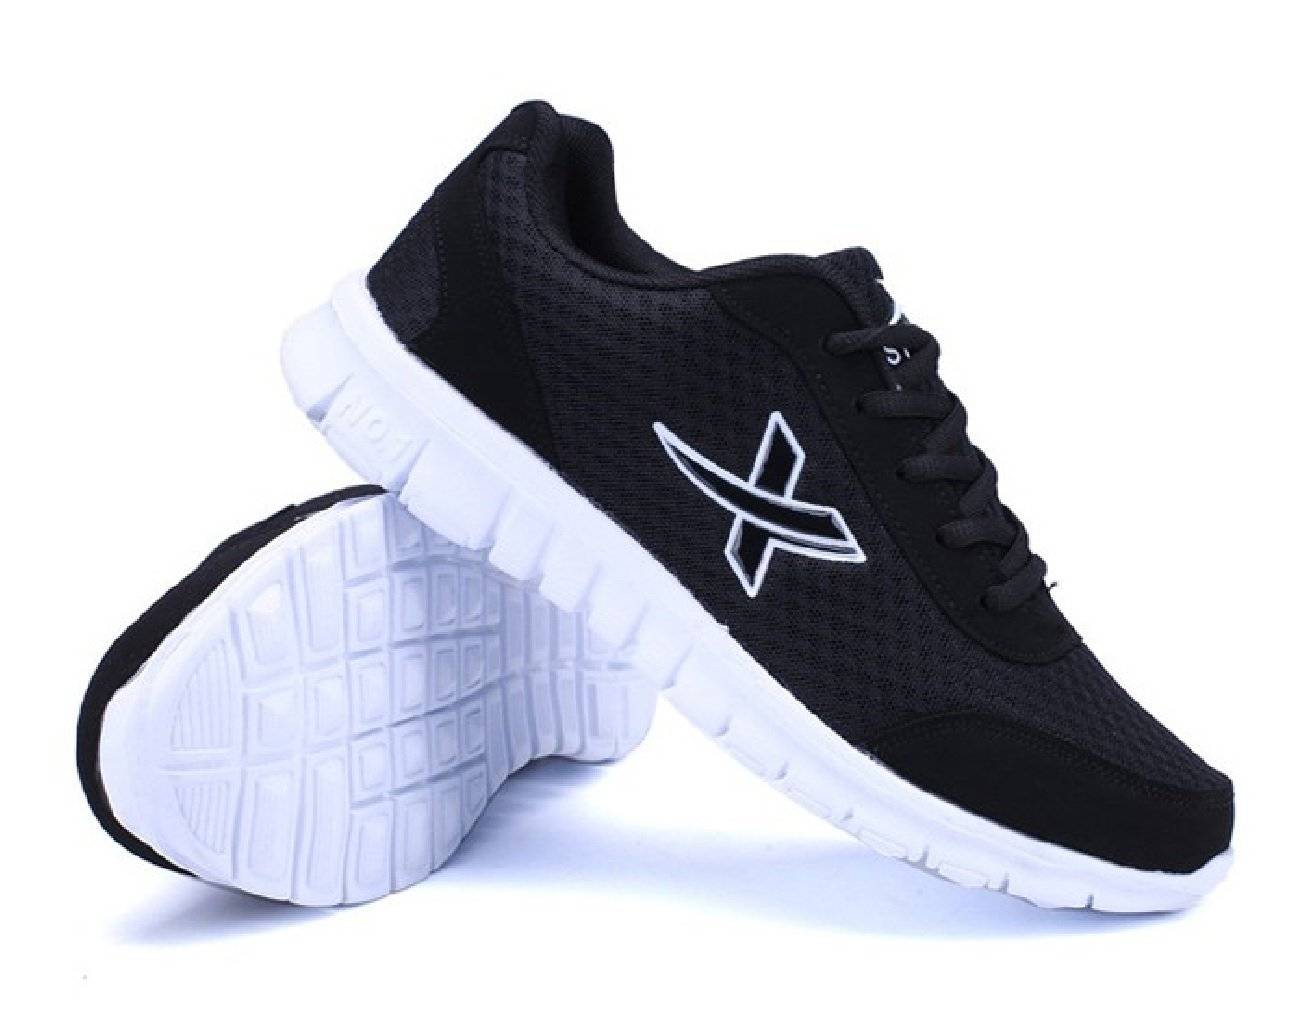 Jacky's New Men's Casual Shoes in The Autumn, Comfortable Breathable Mesh Shoes (7, Black)